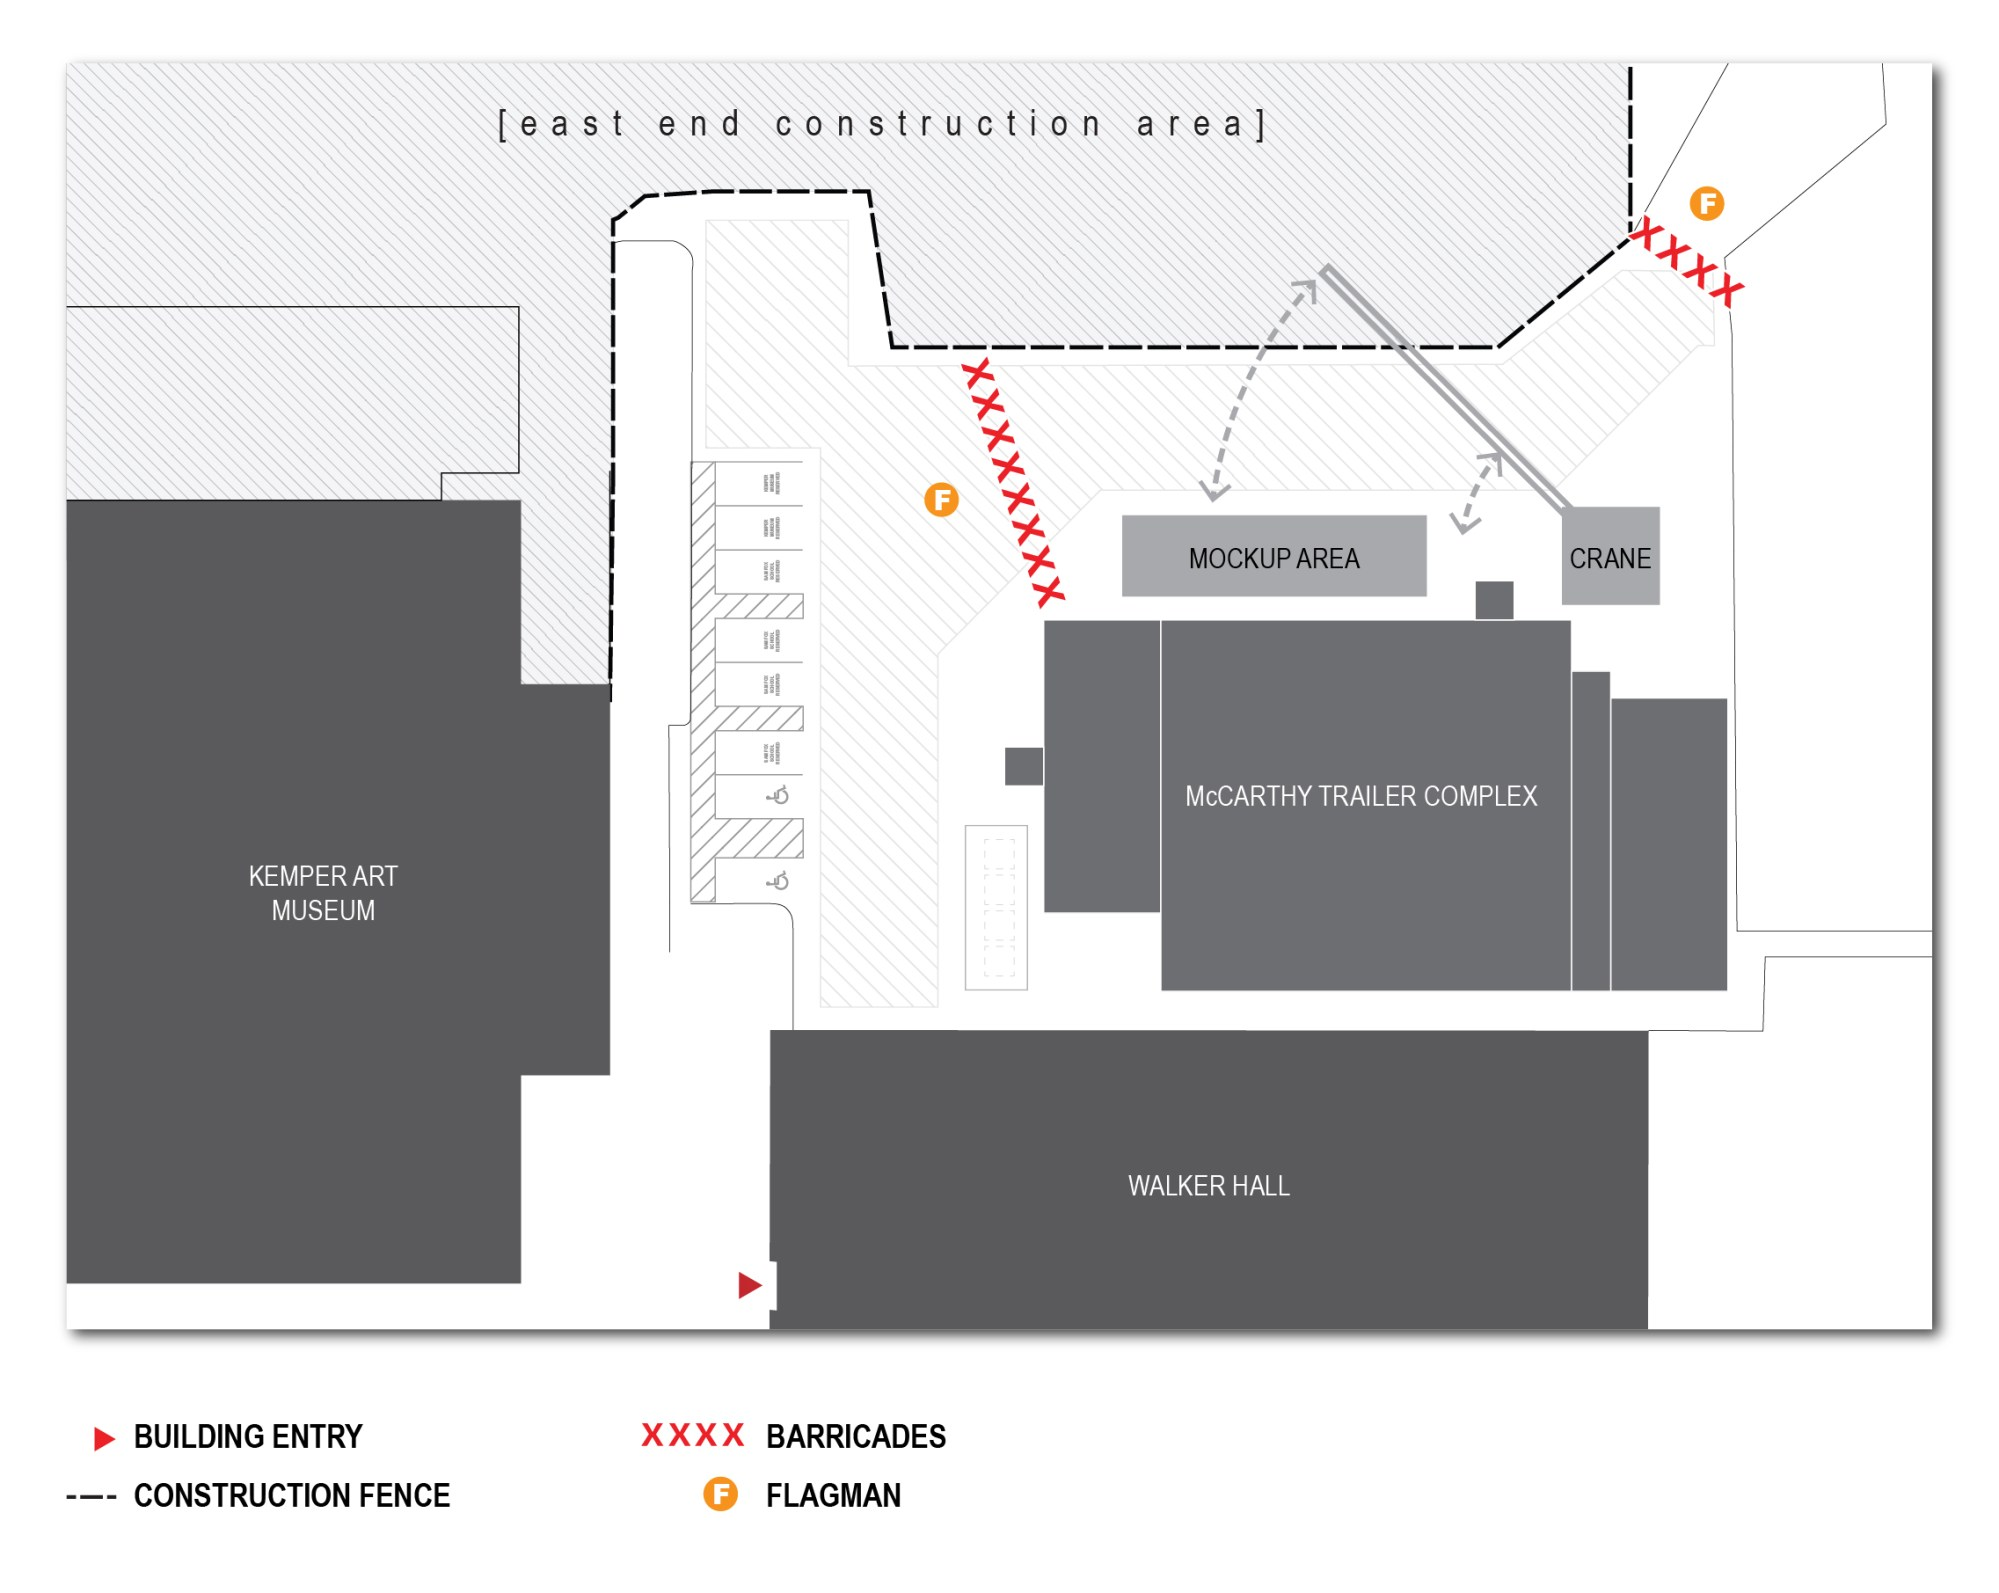 hight resolution of diagram showing pedestrian access on the east end construction site at washu